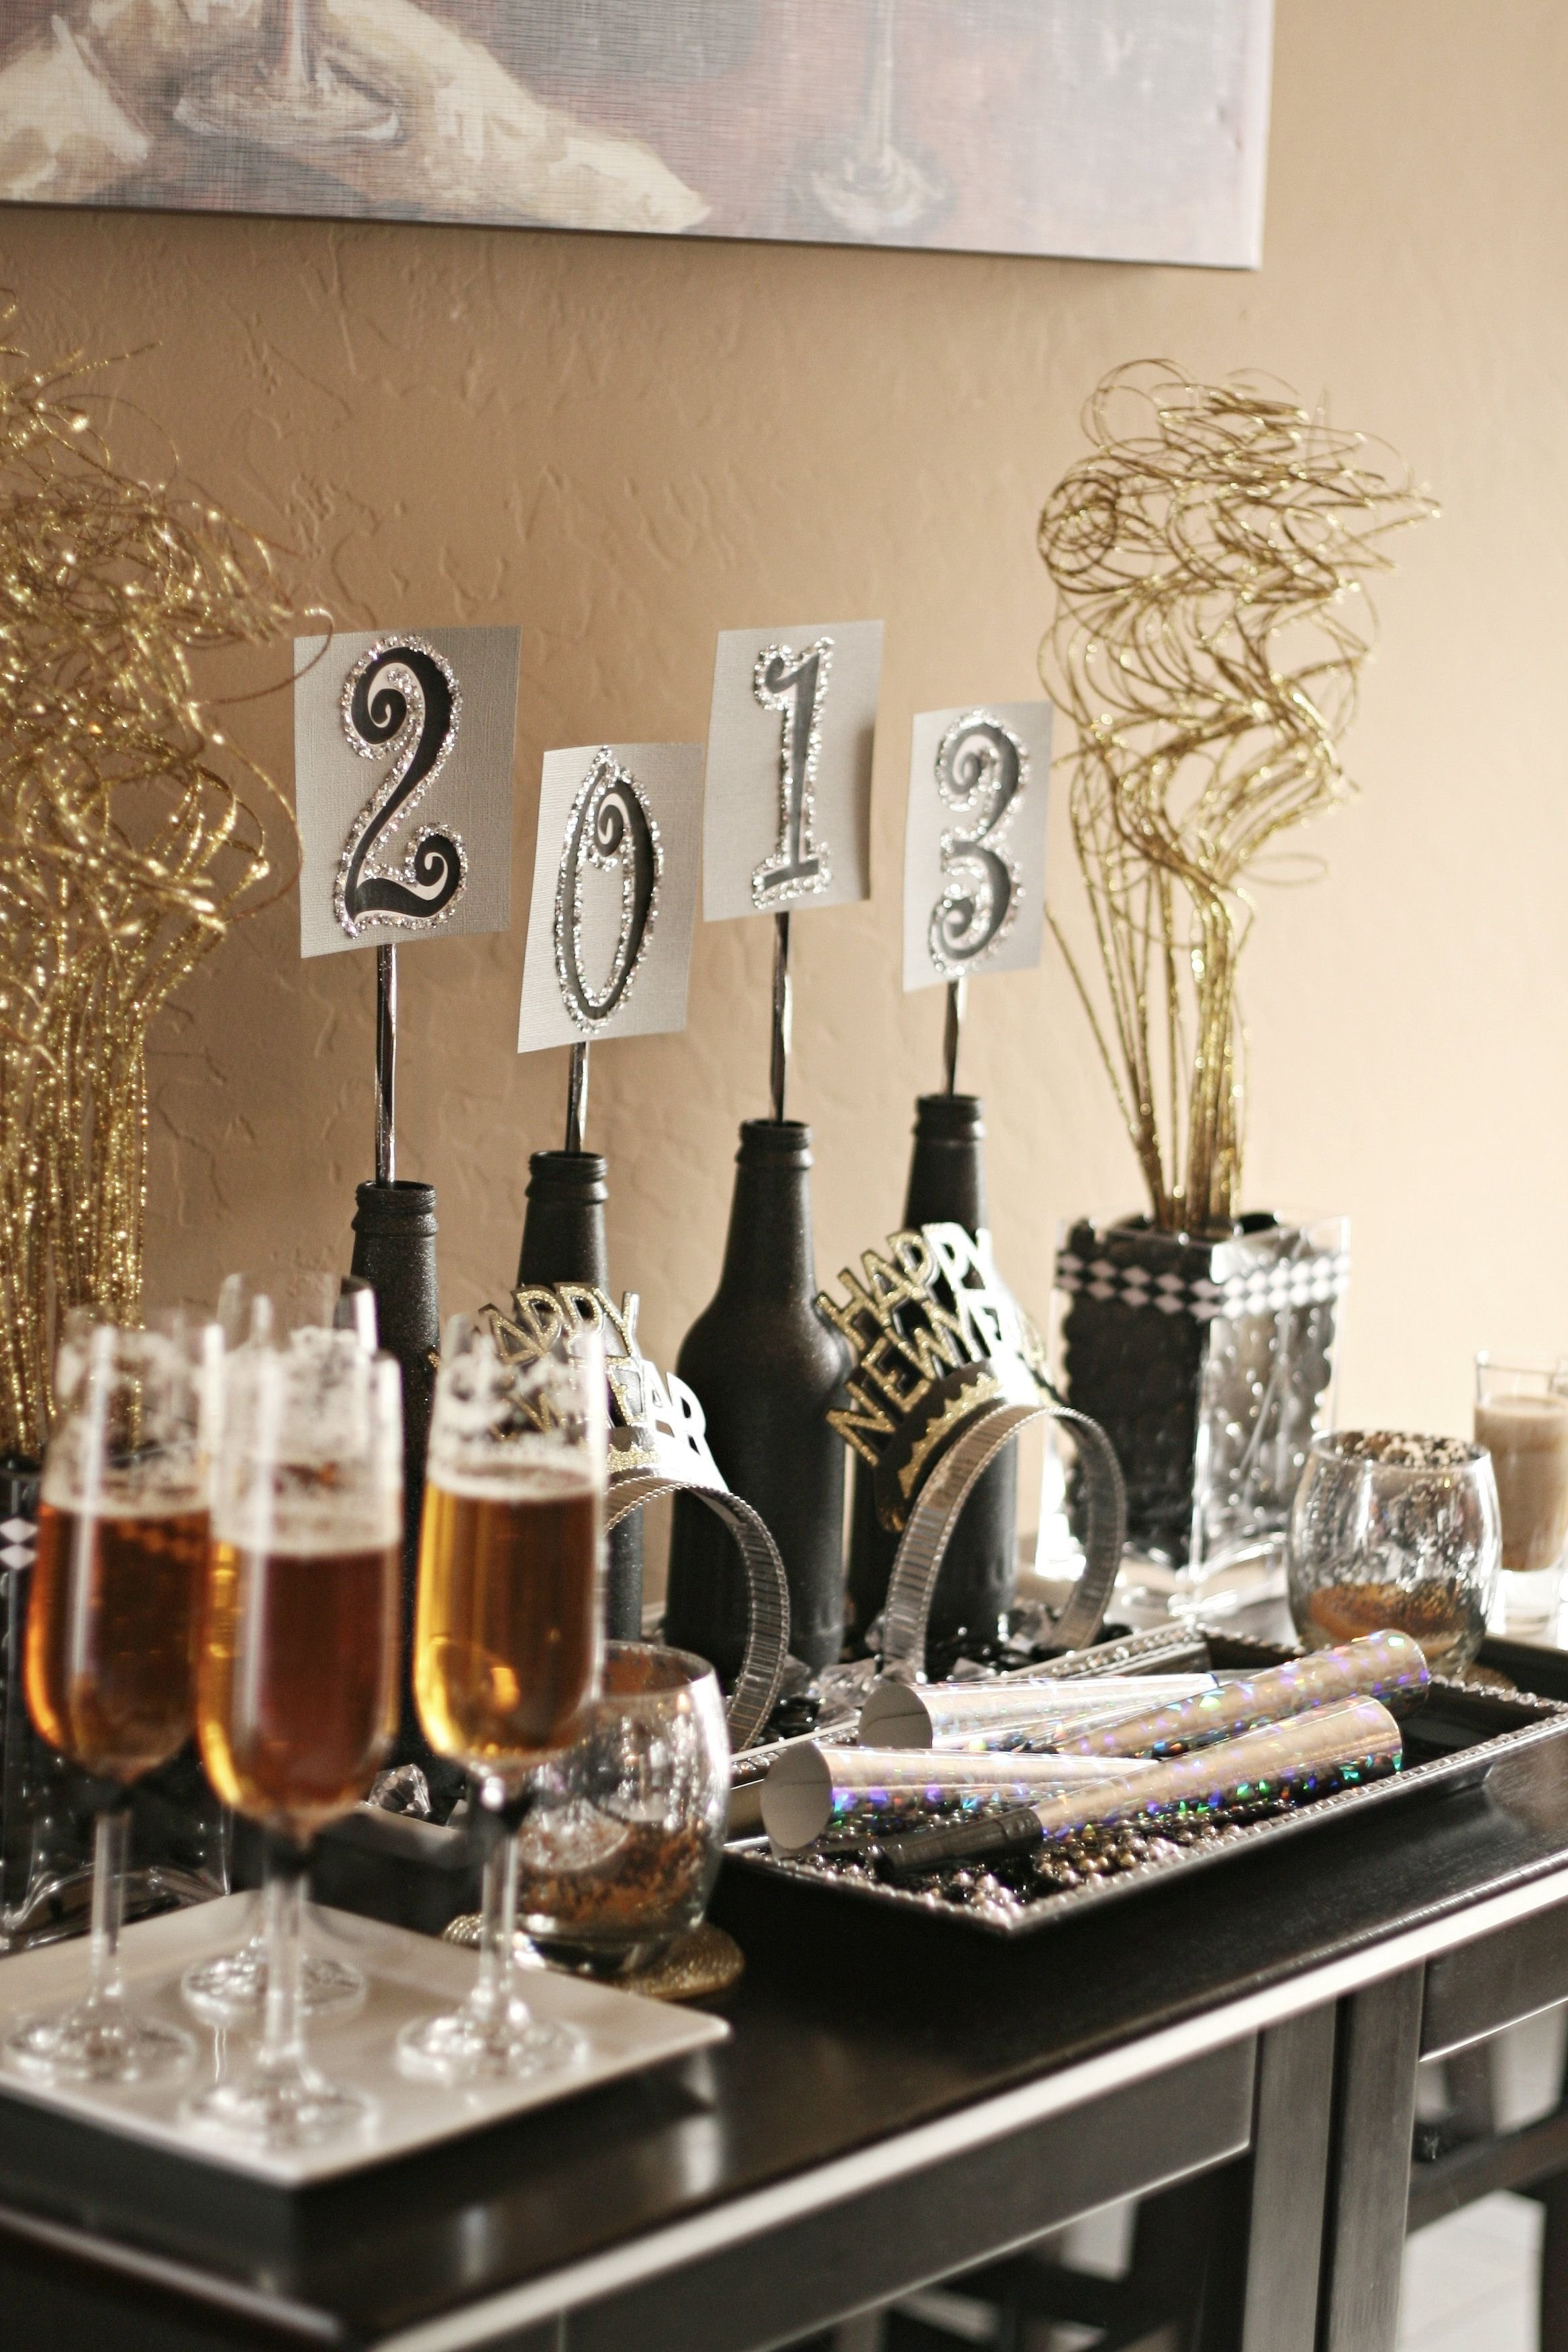 10 Lovable New Years Eve Theme Party Ideas preparing for the new year bottle wine and place holder 2021